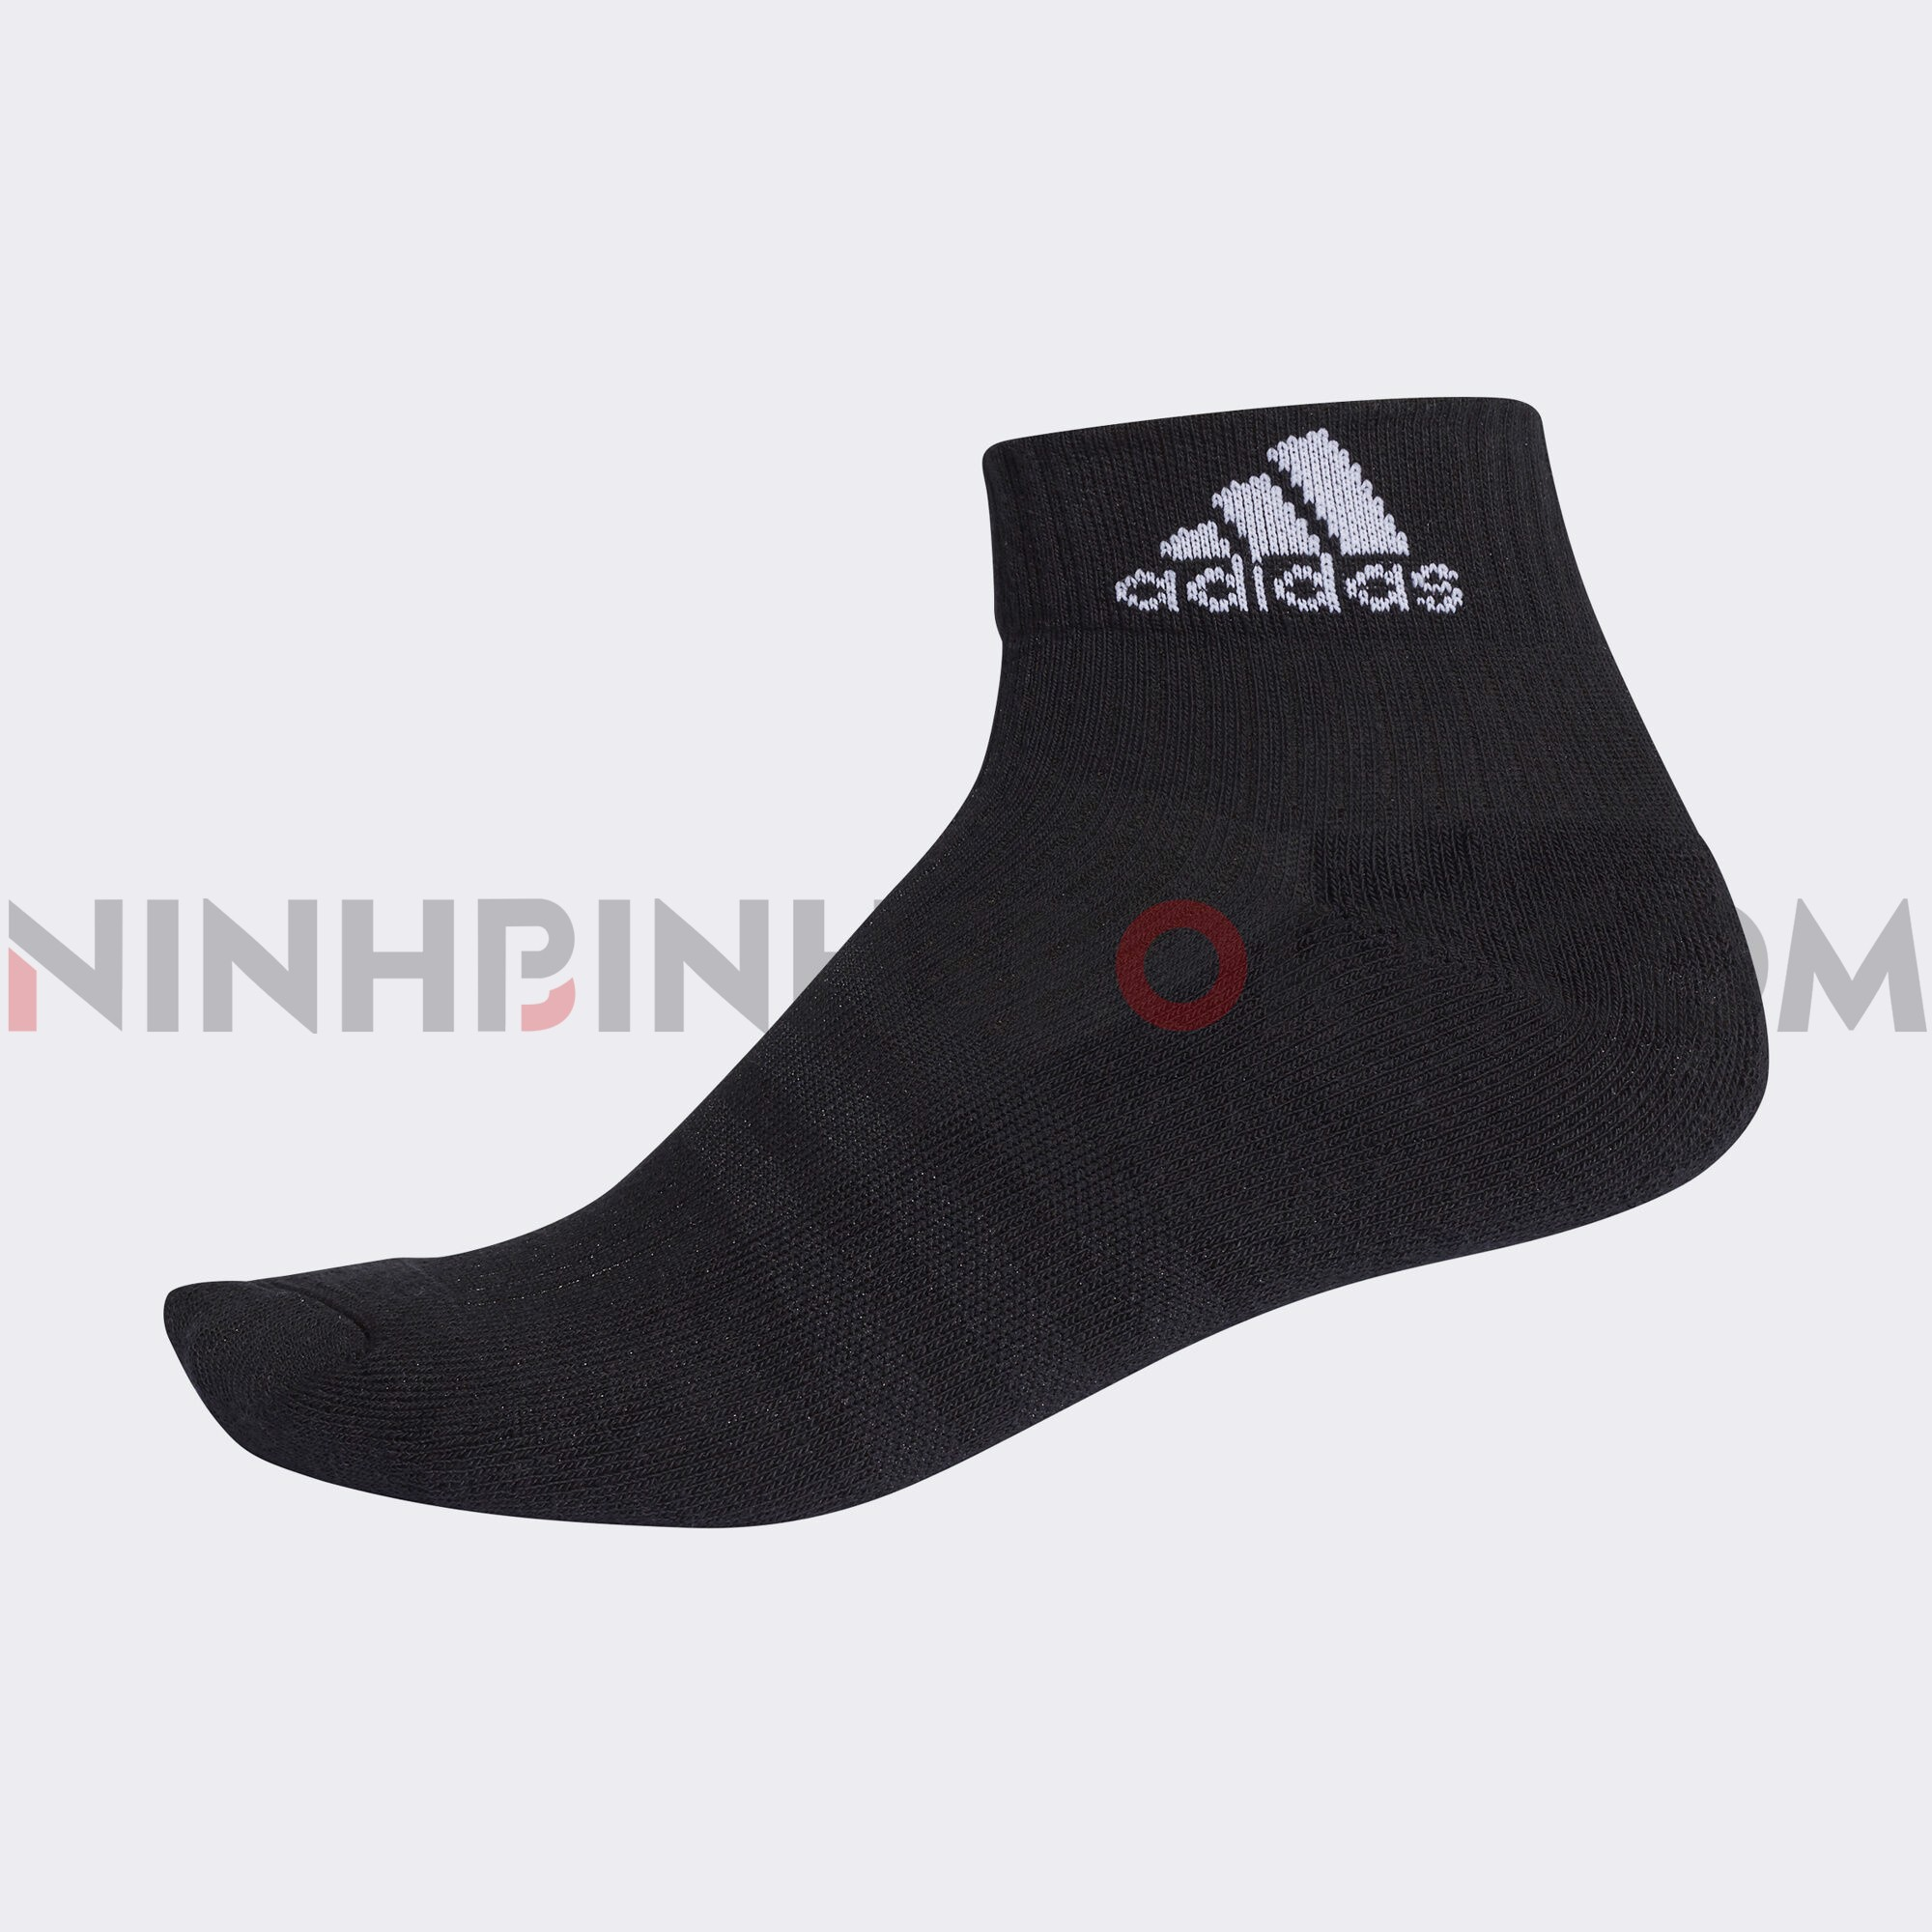 Tất thể thao Adidas 3S Per An AA2292